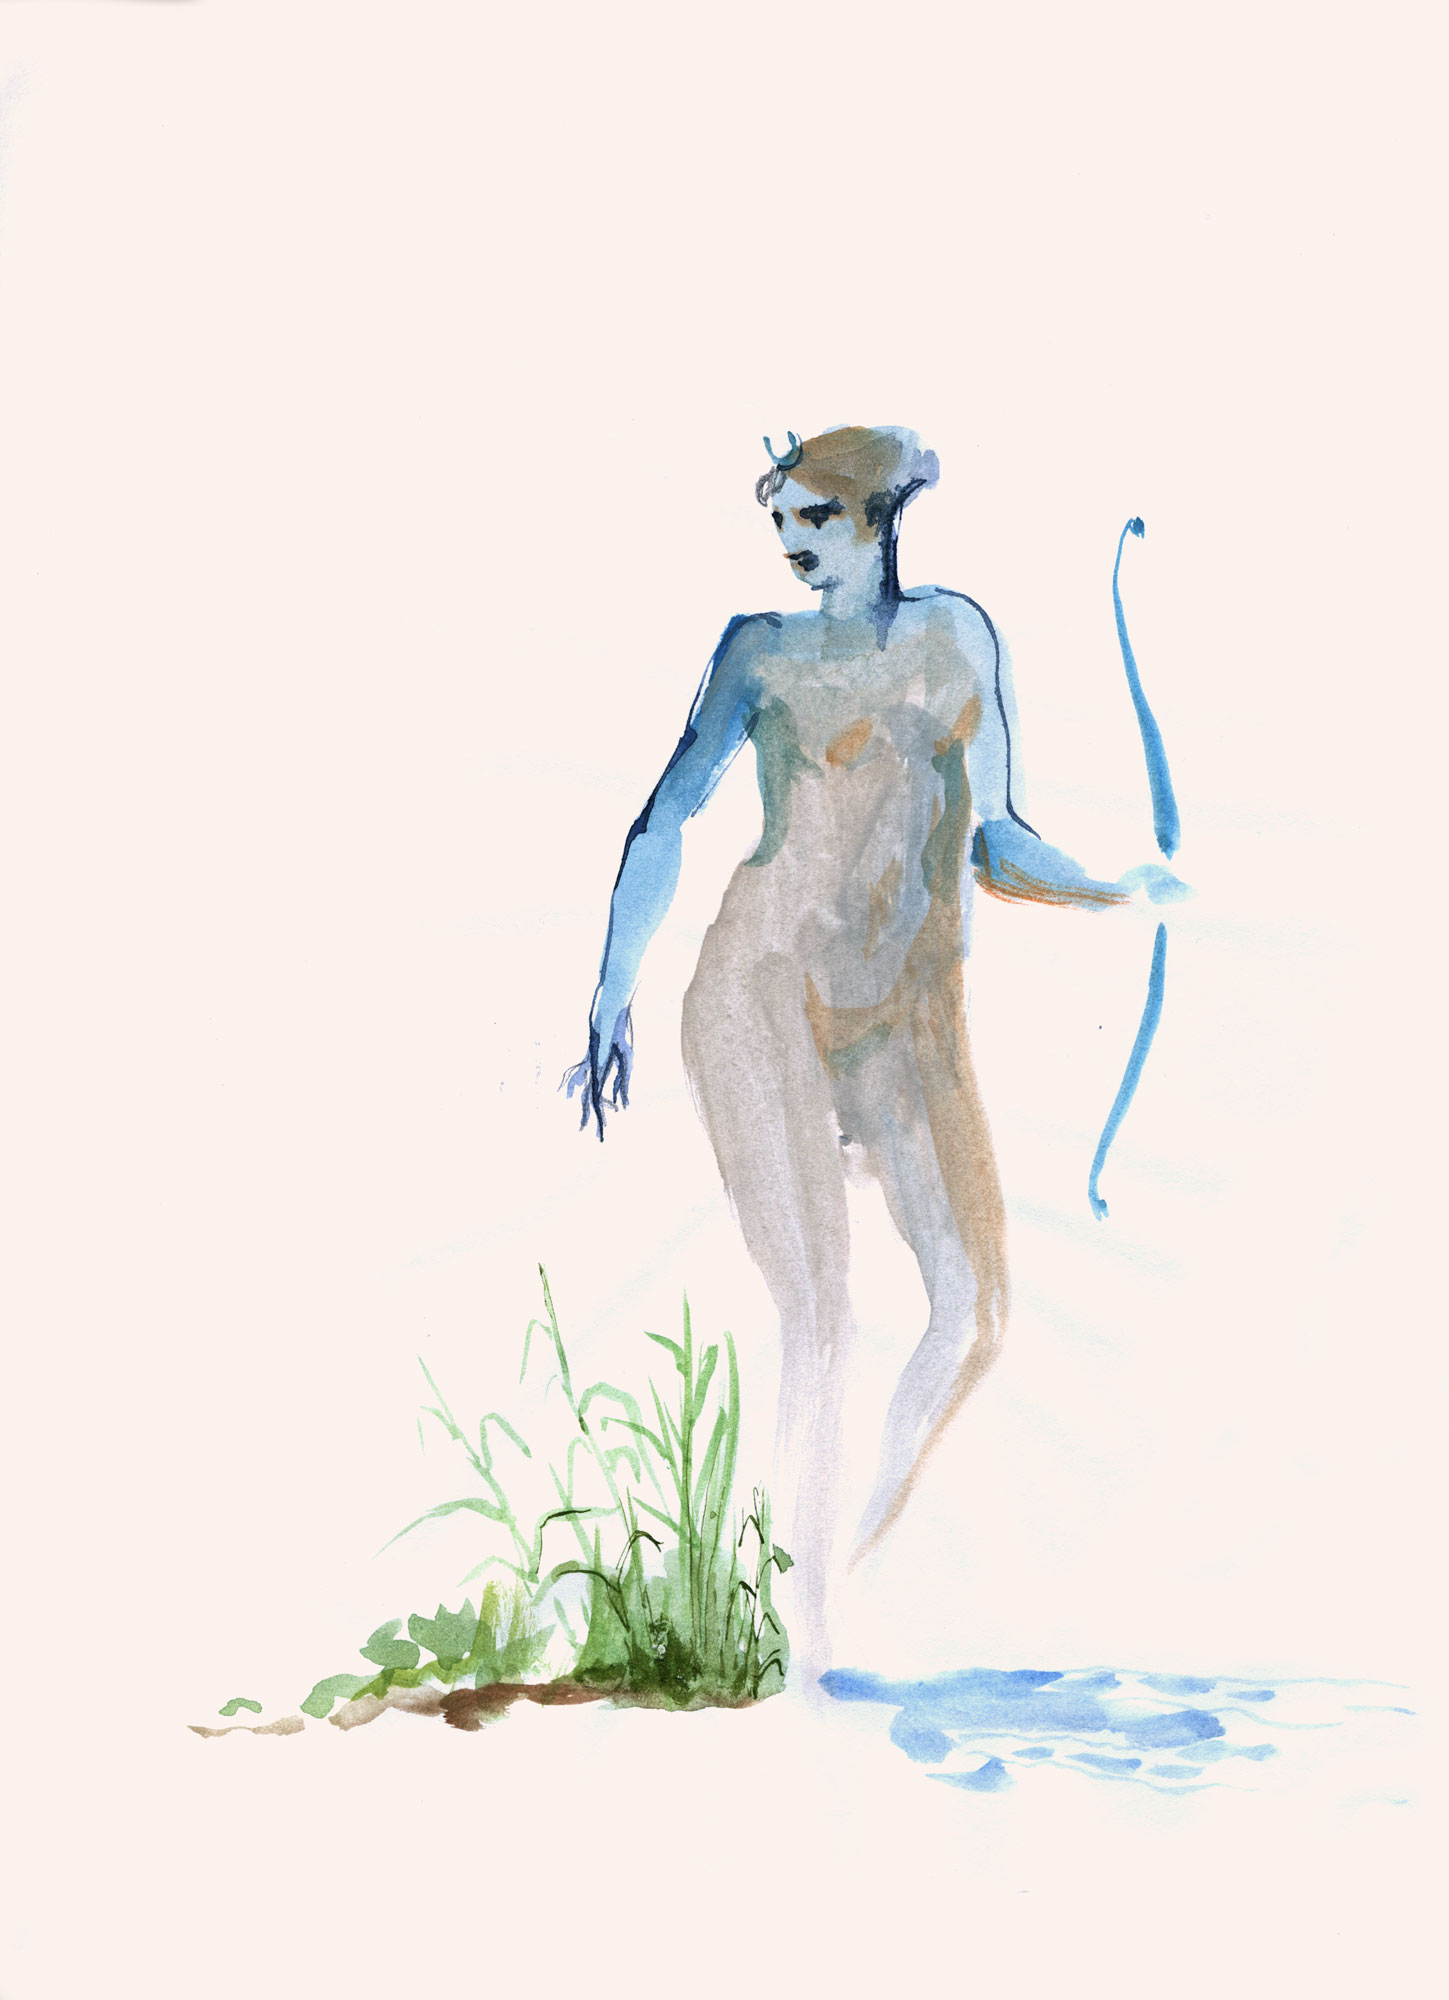 Artemis  2018, Watercolor and Pencil on Paper, 11 x 8 1/2 inches.  © Leonard Porter MMXVIII